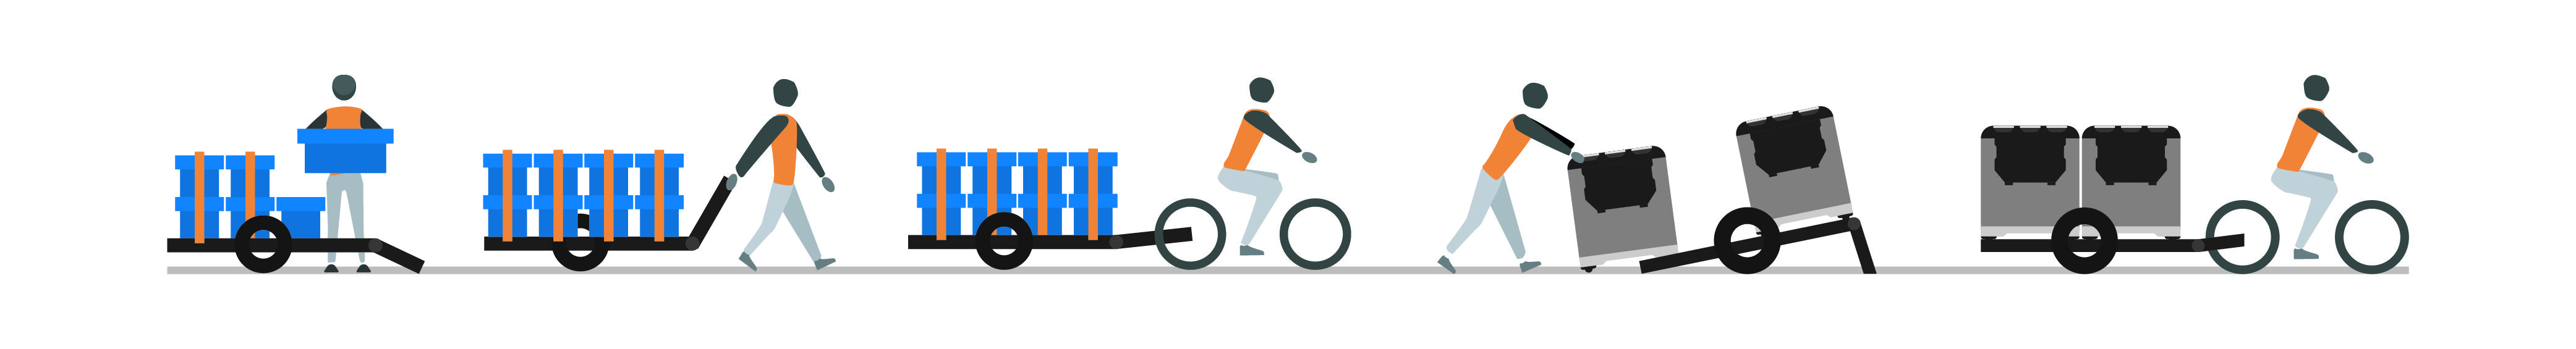 Pictogram of a person with a blue box putting it on the Runner bike trailer where 5 blue boxes are already in position, same person is pulling the Runner bike trailer with 8 blue boxes on it, same person is towing the Runner bike trailer with the 8 blue boxes on it,  person pushing a container on the Runner bike trailer on which the same container is already mounted, same person towing the Runner bike trailer with the two grey and black containers